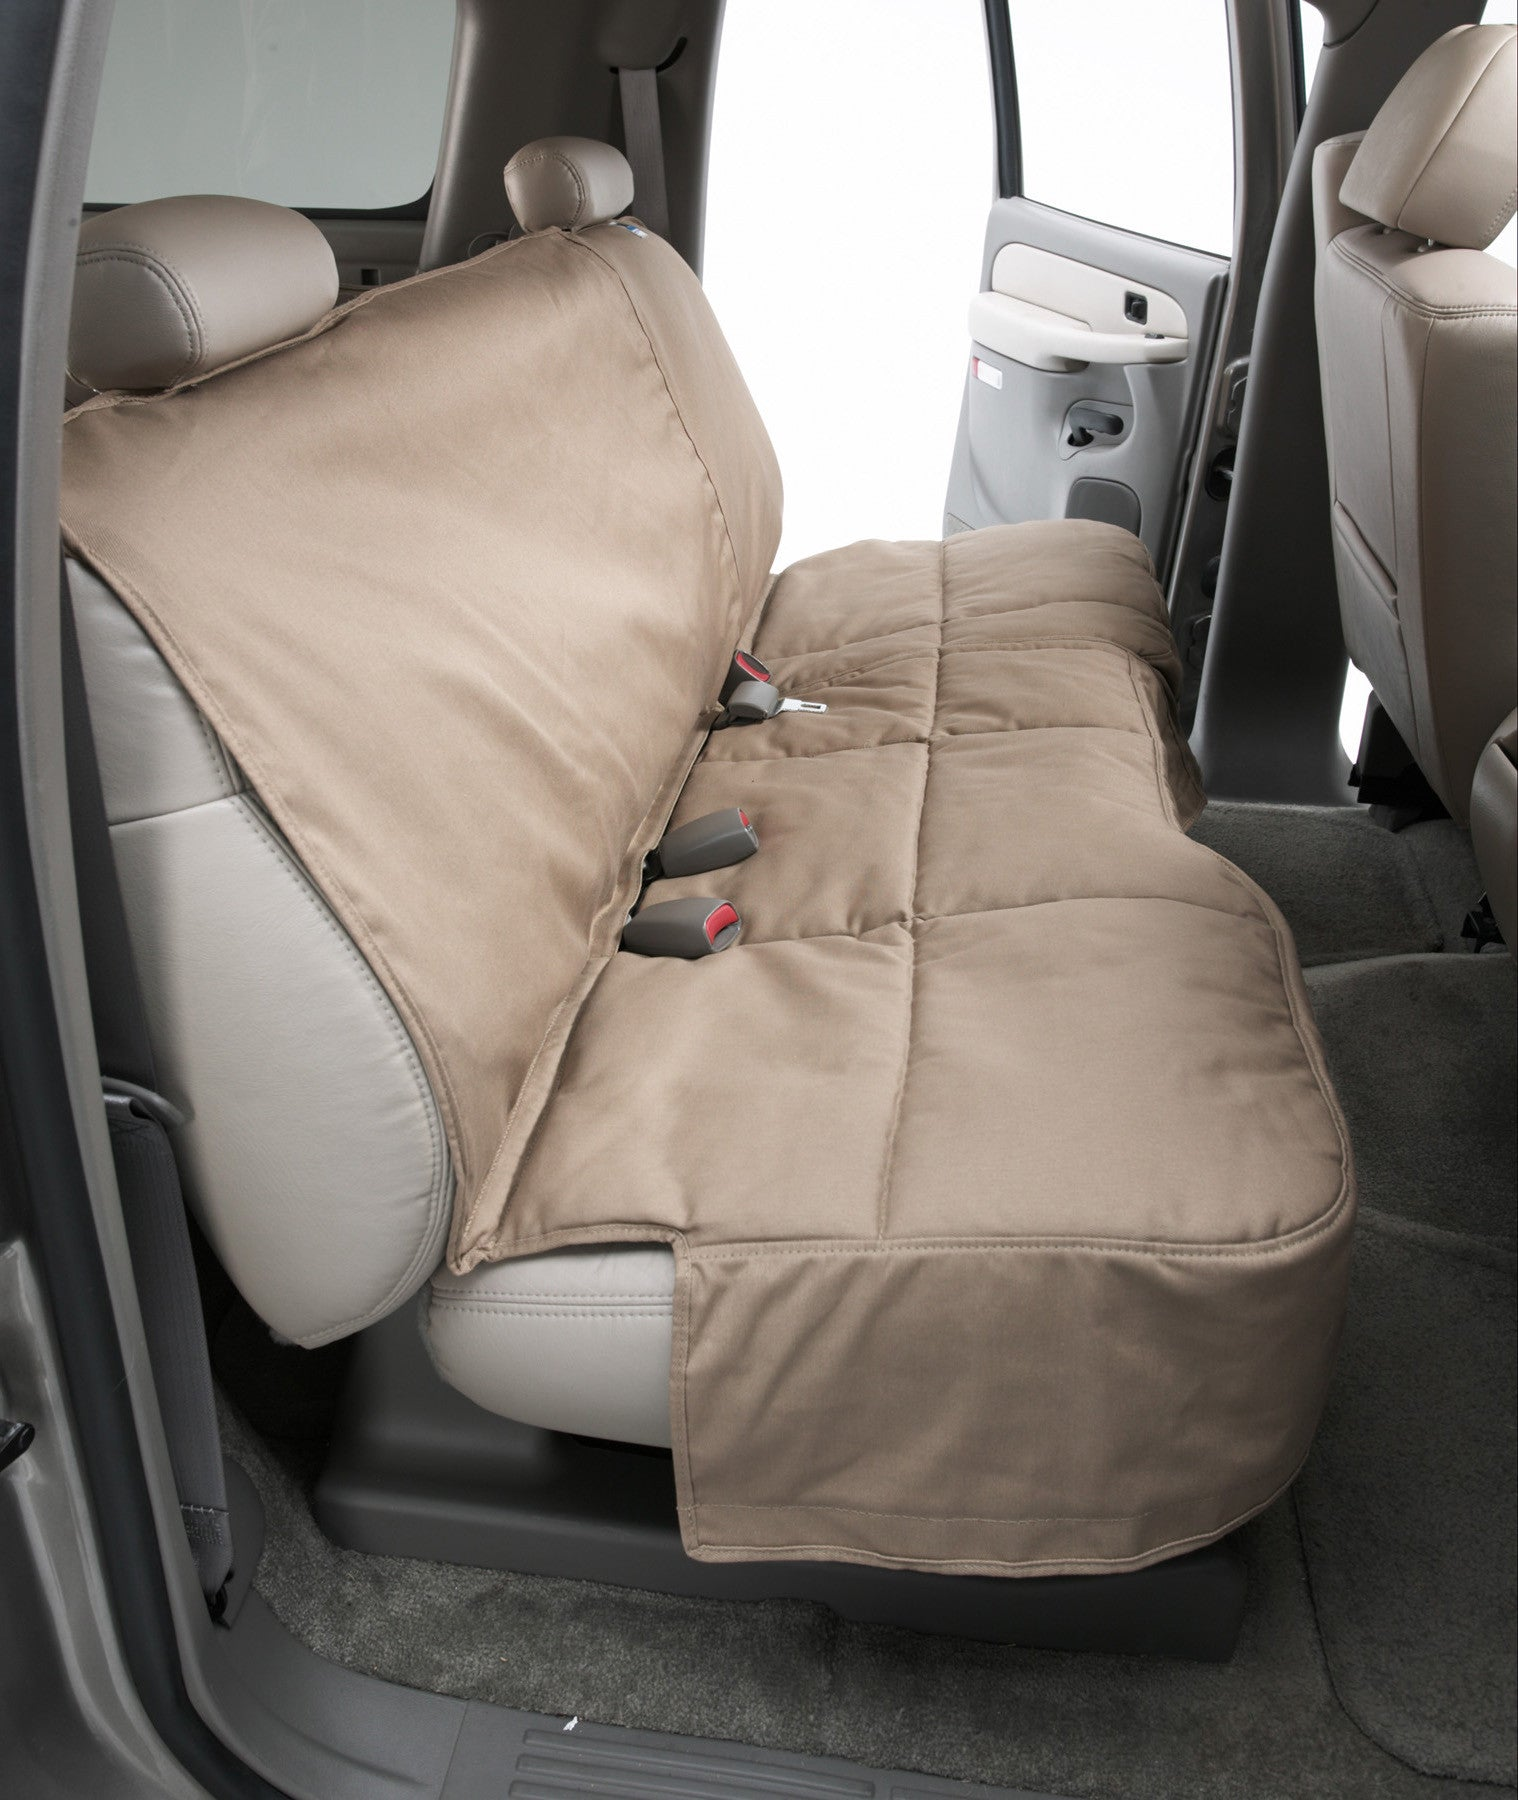 Canine Covers Custom Rear Seat Protector For Dogs Dog Cover Bench